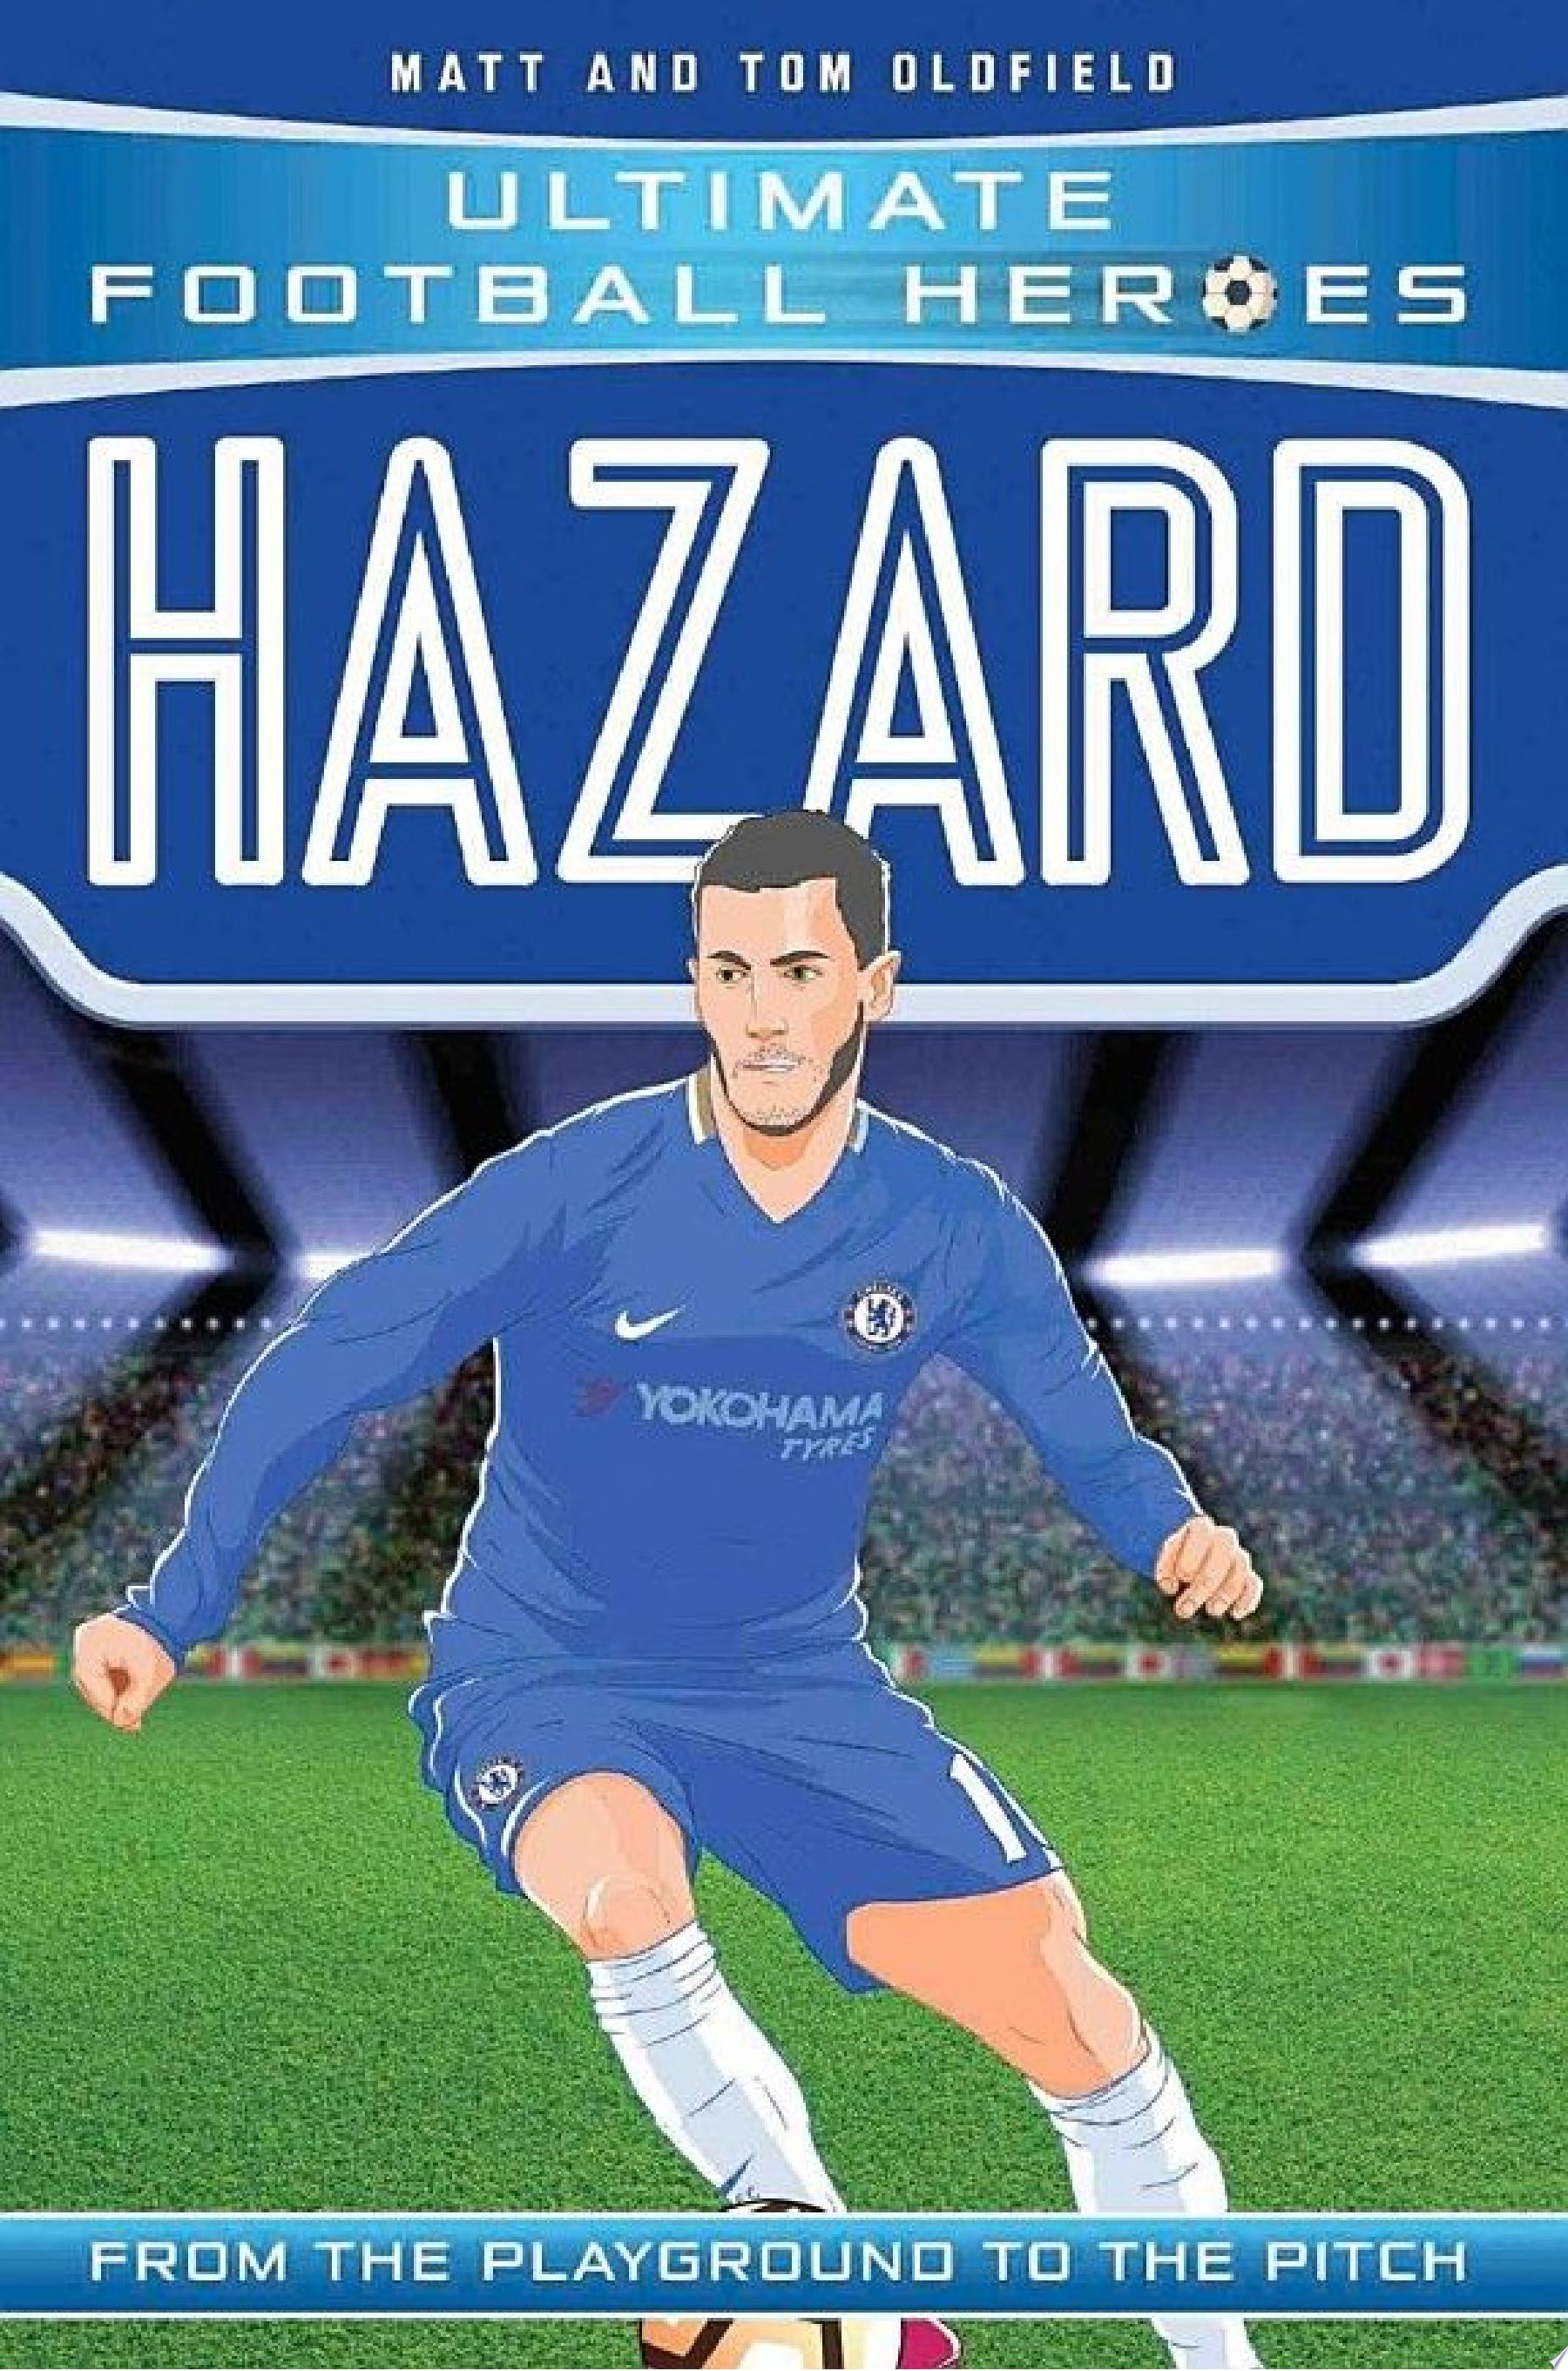 Hazard  Ultimate Football Heroes    Collect Them All